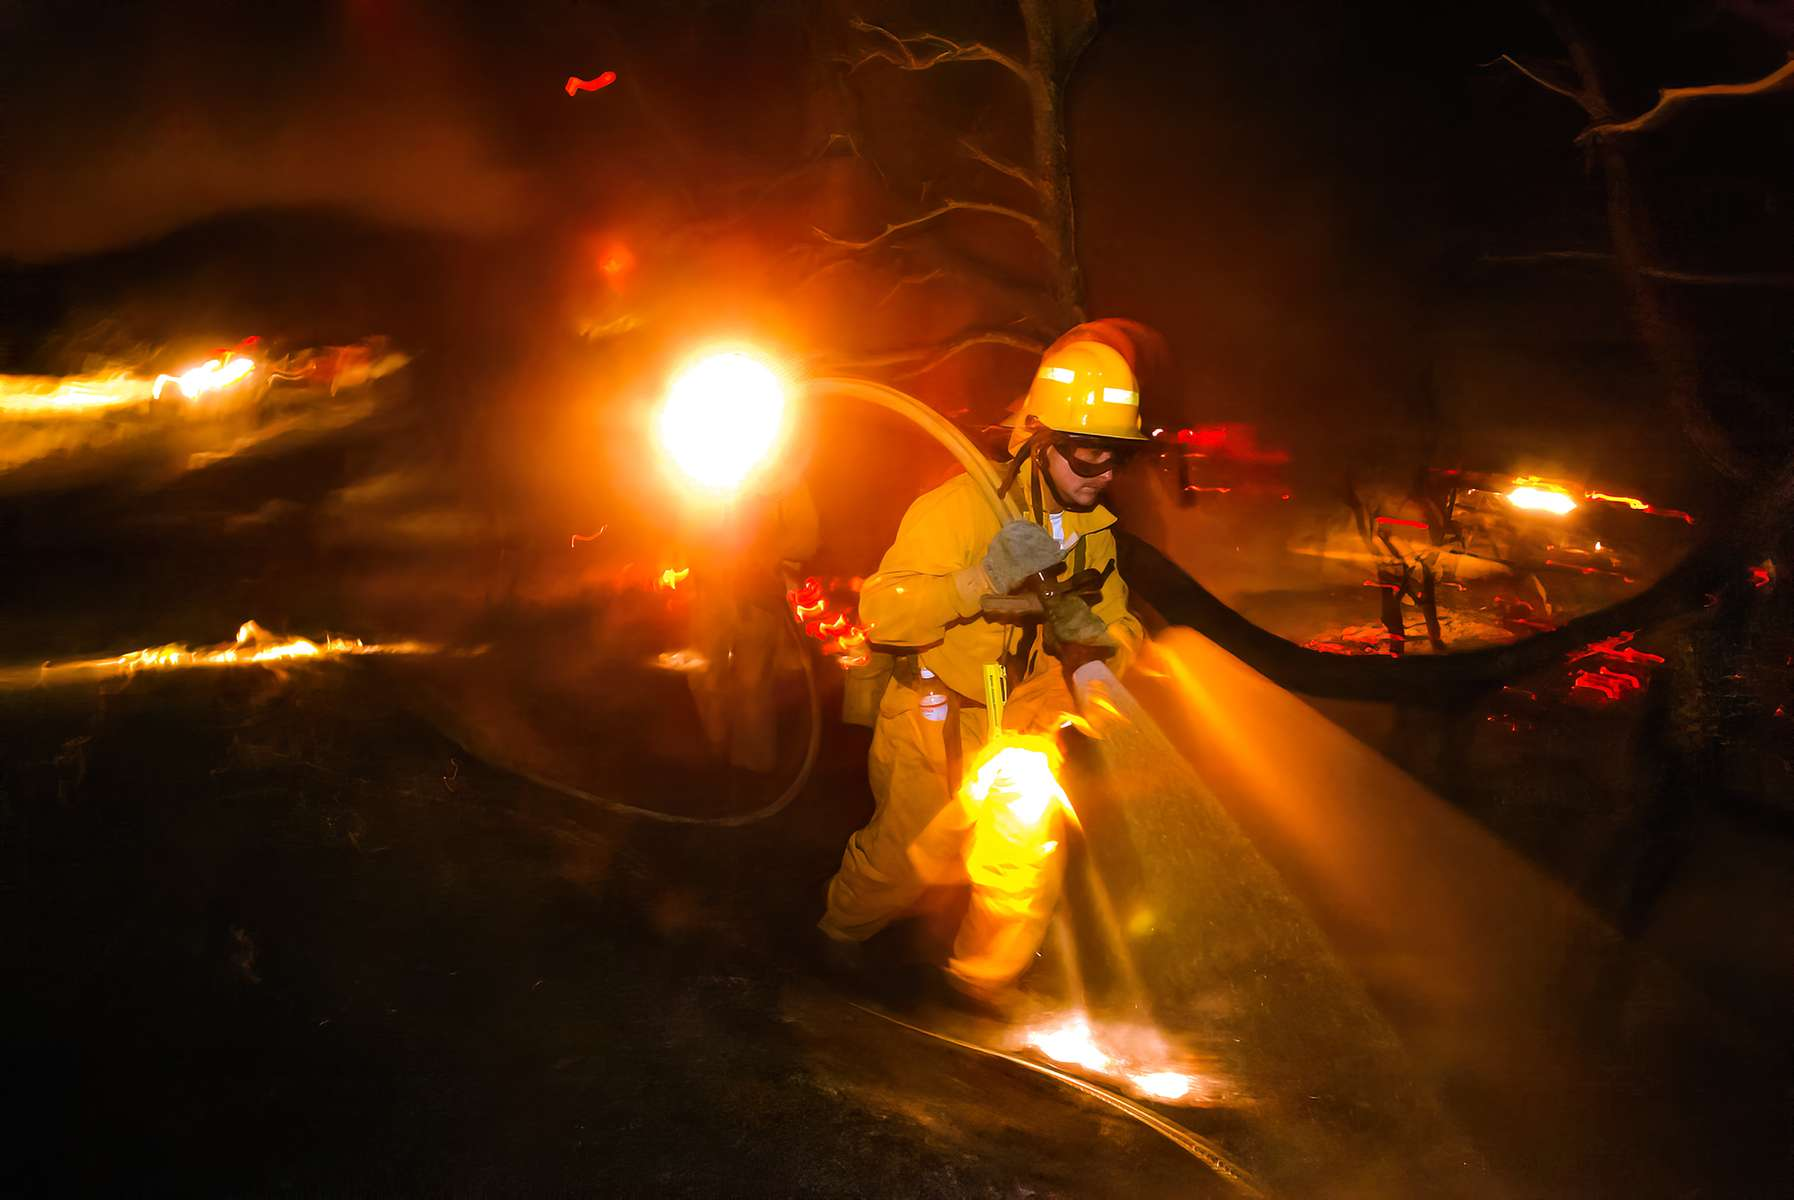 Firefighter Paul Shikowitz of the Dry Creek-Lokoya Volunteer Fire Department's Company 16 sprays down hotspots on a brush fire off of Partrick Road west of Napa, California. Firefighters were hindered by a downed powerline that sparked the fire and had to wait for Pacific Gas and Electric to shut off the power before moving in to fight the flames.